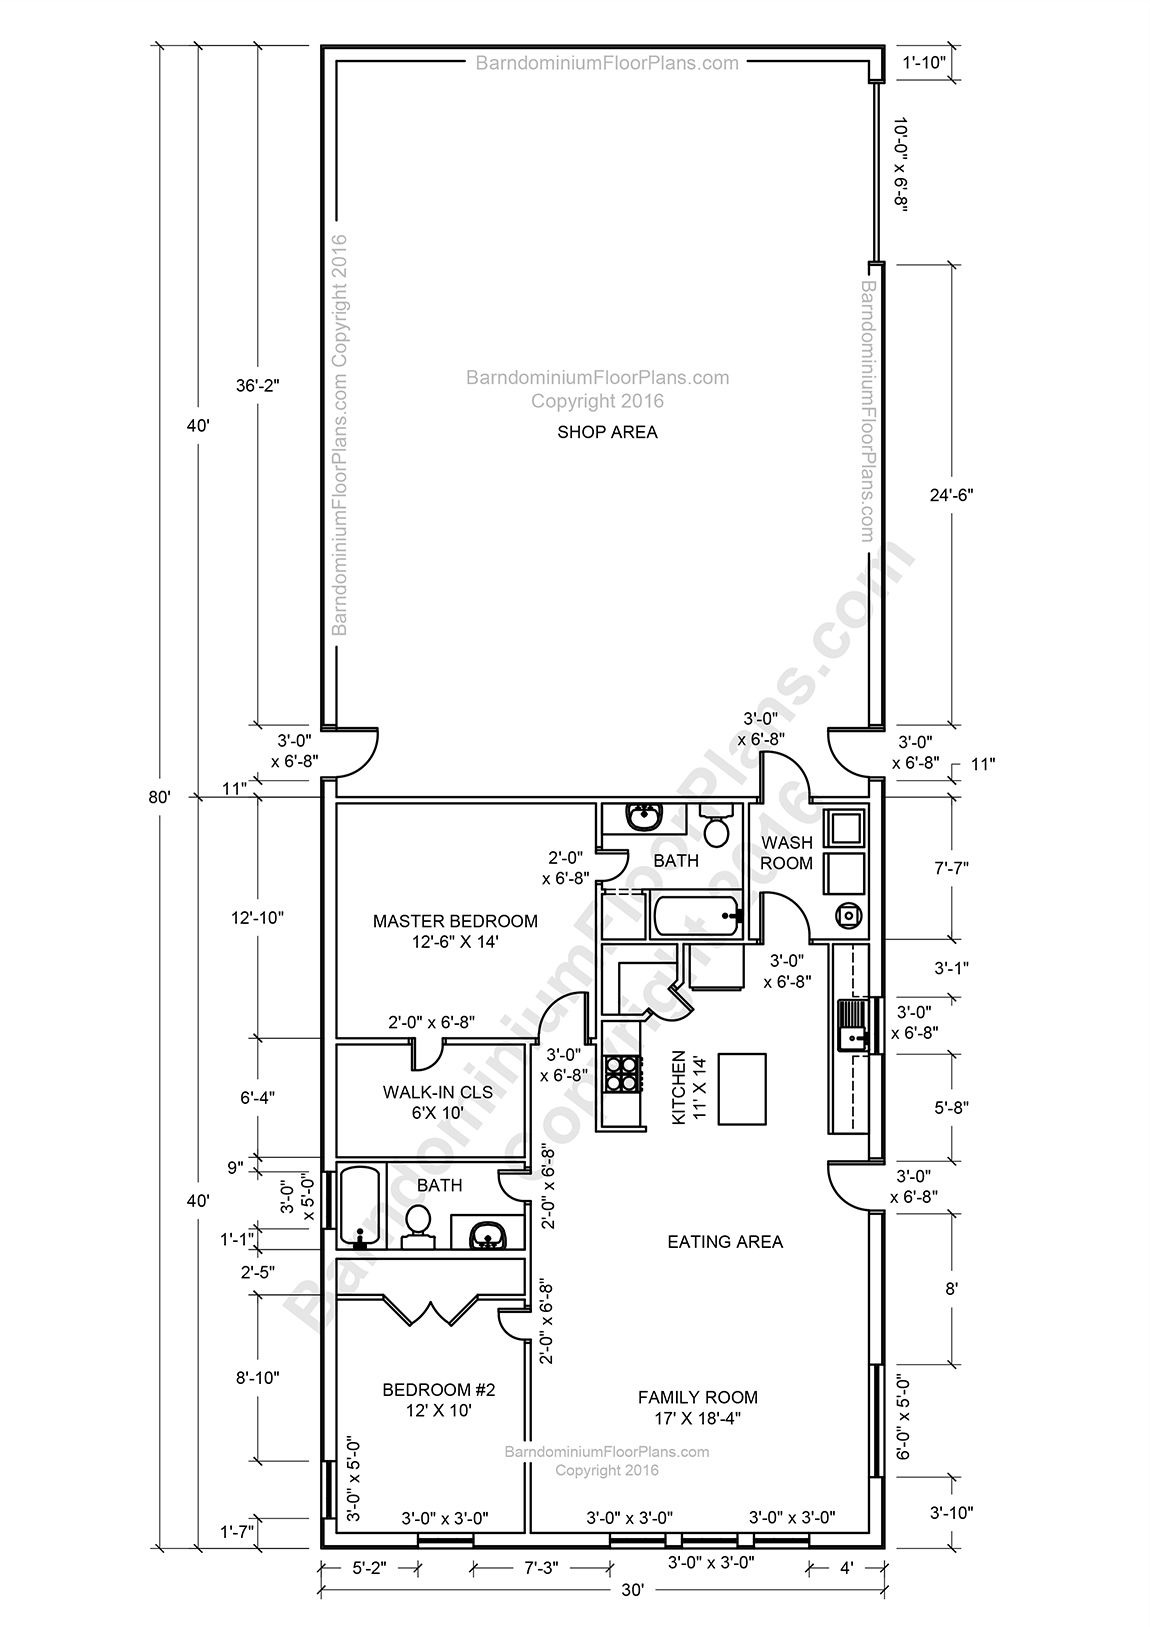 Pole Barn House Plans and Prices New 2 Bedroom 2 Bath Barndominium Floor Plan for 30 Foot Wide